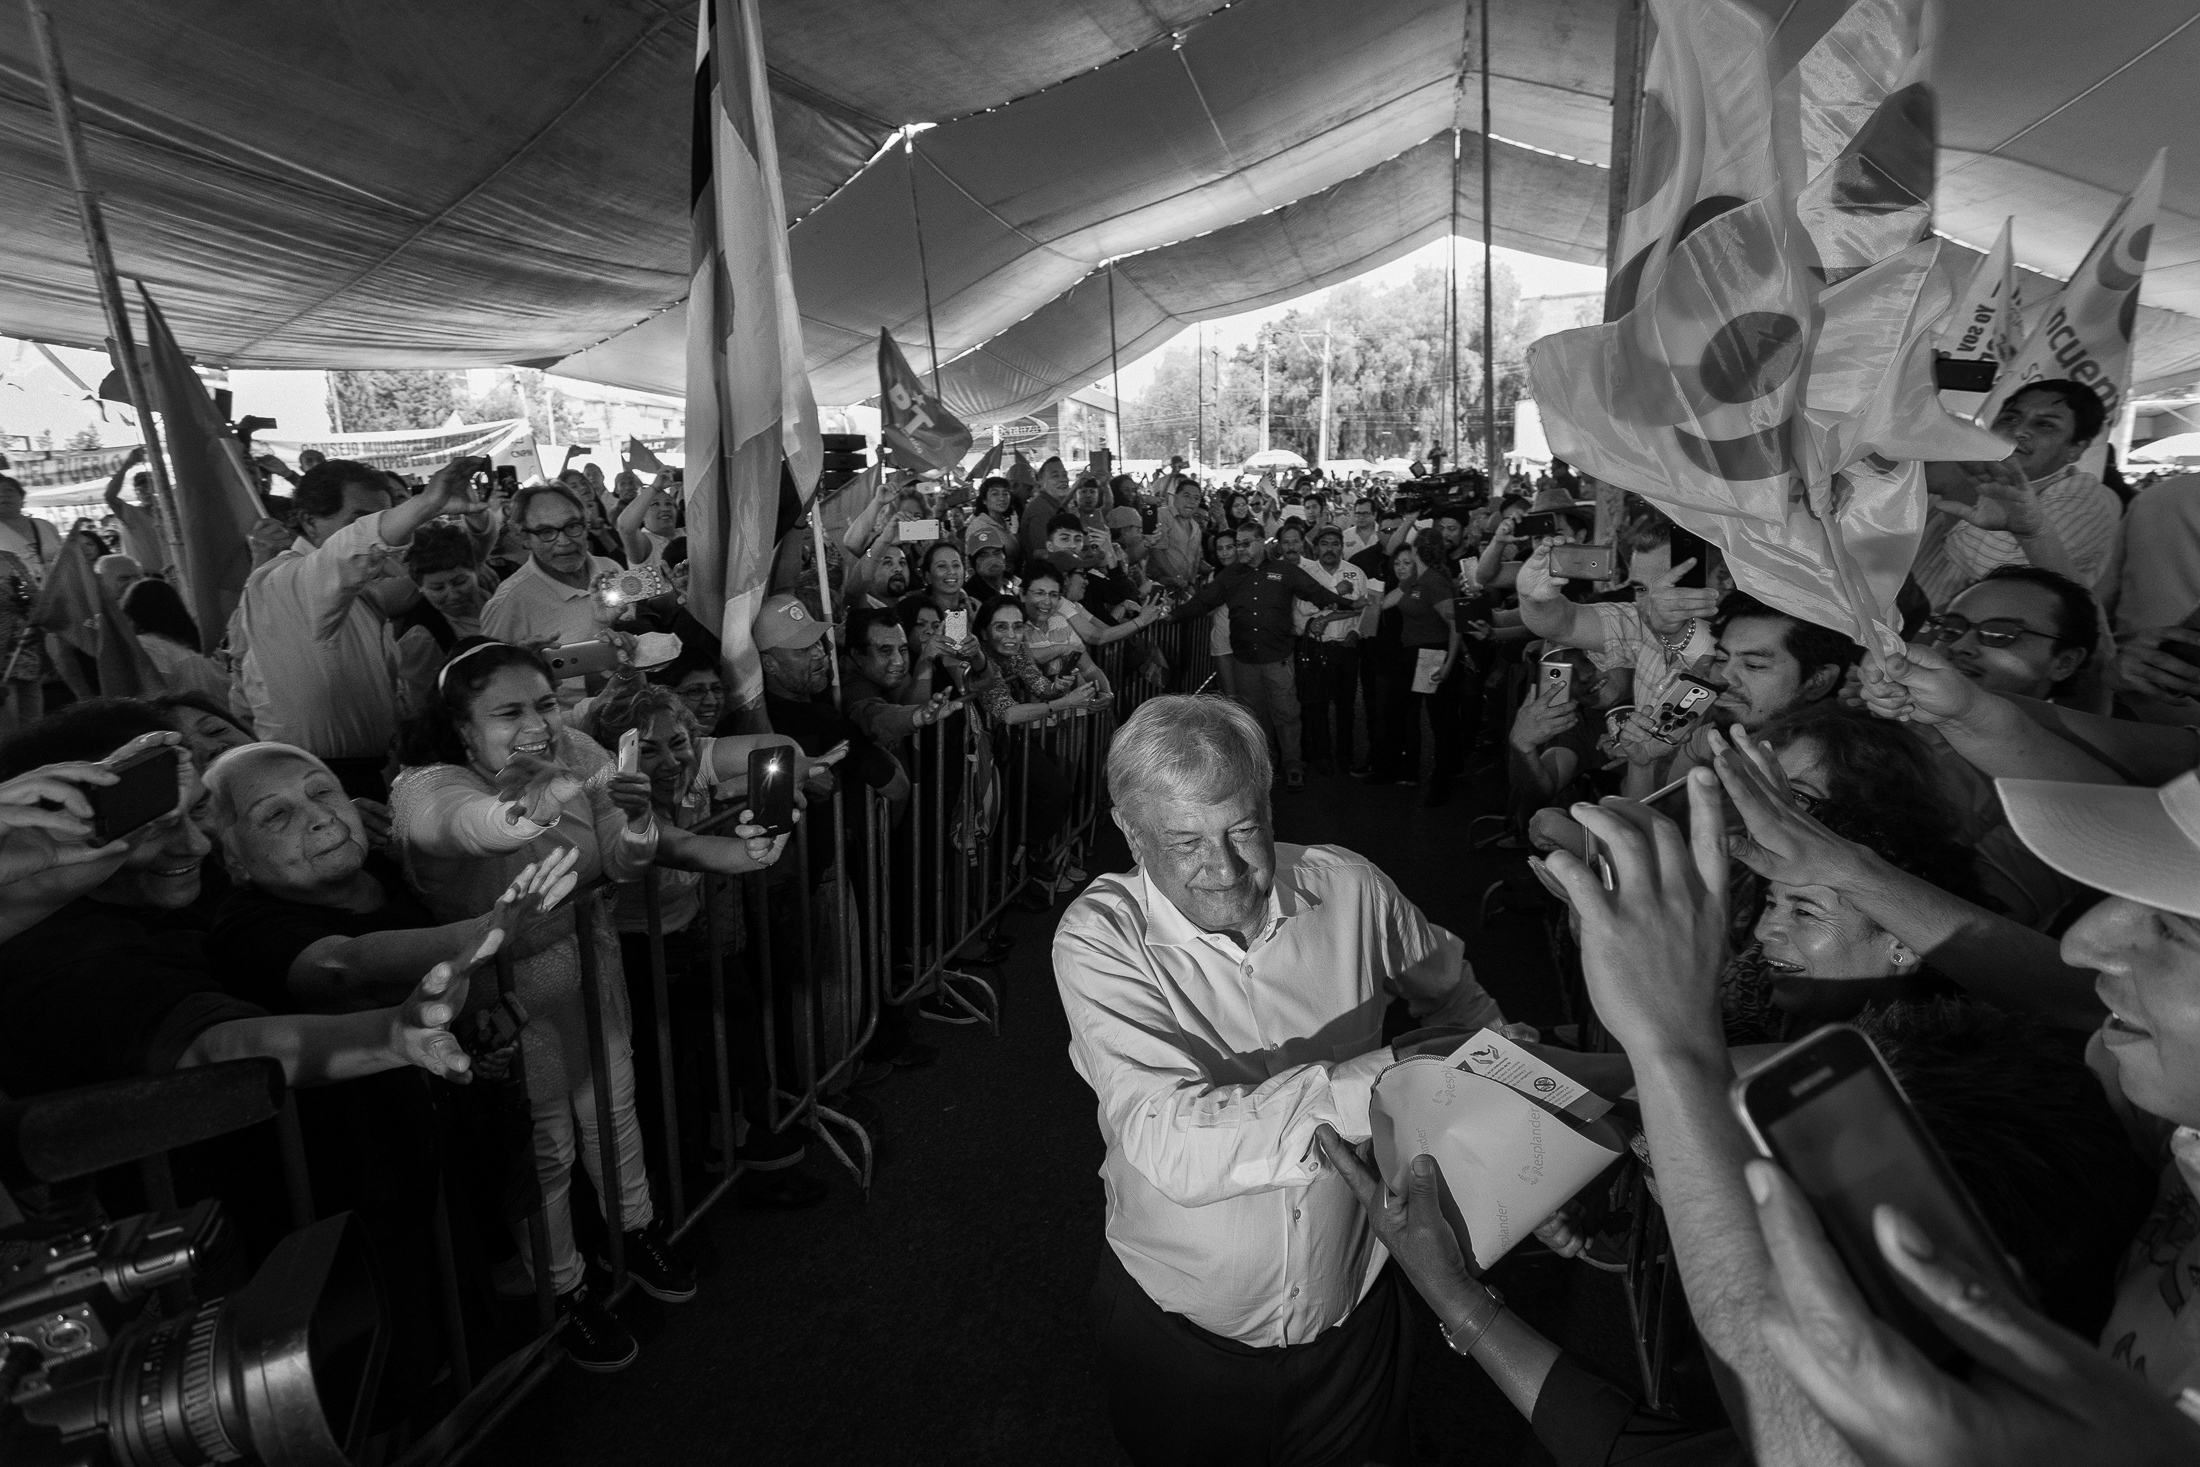 Art and Documentary Photography - Loading 08-13-amlo_180413-0495-w.jpg